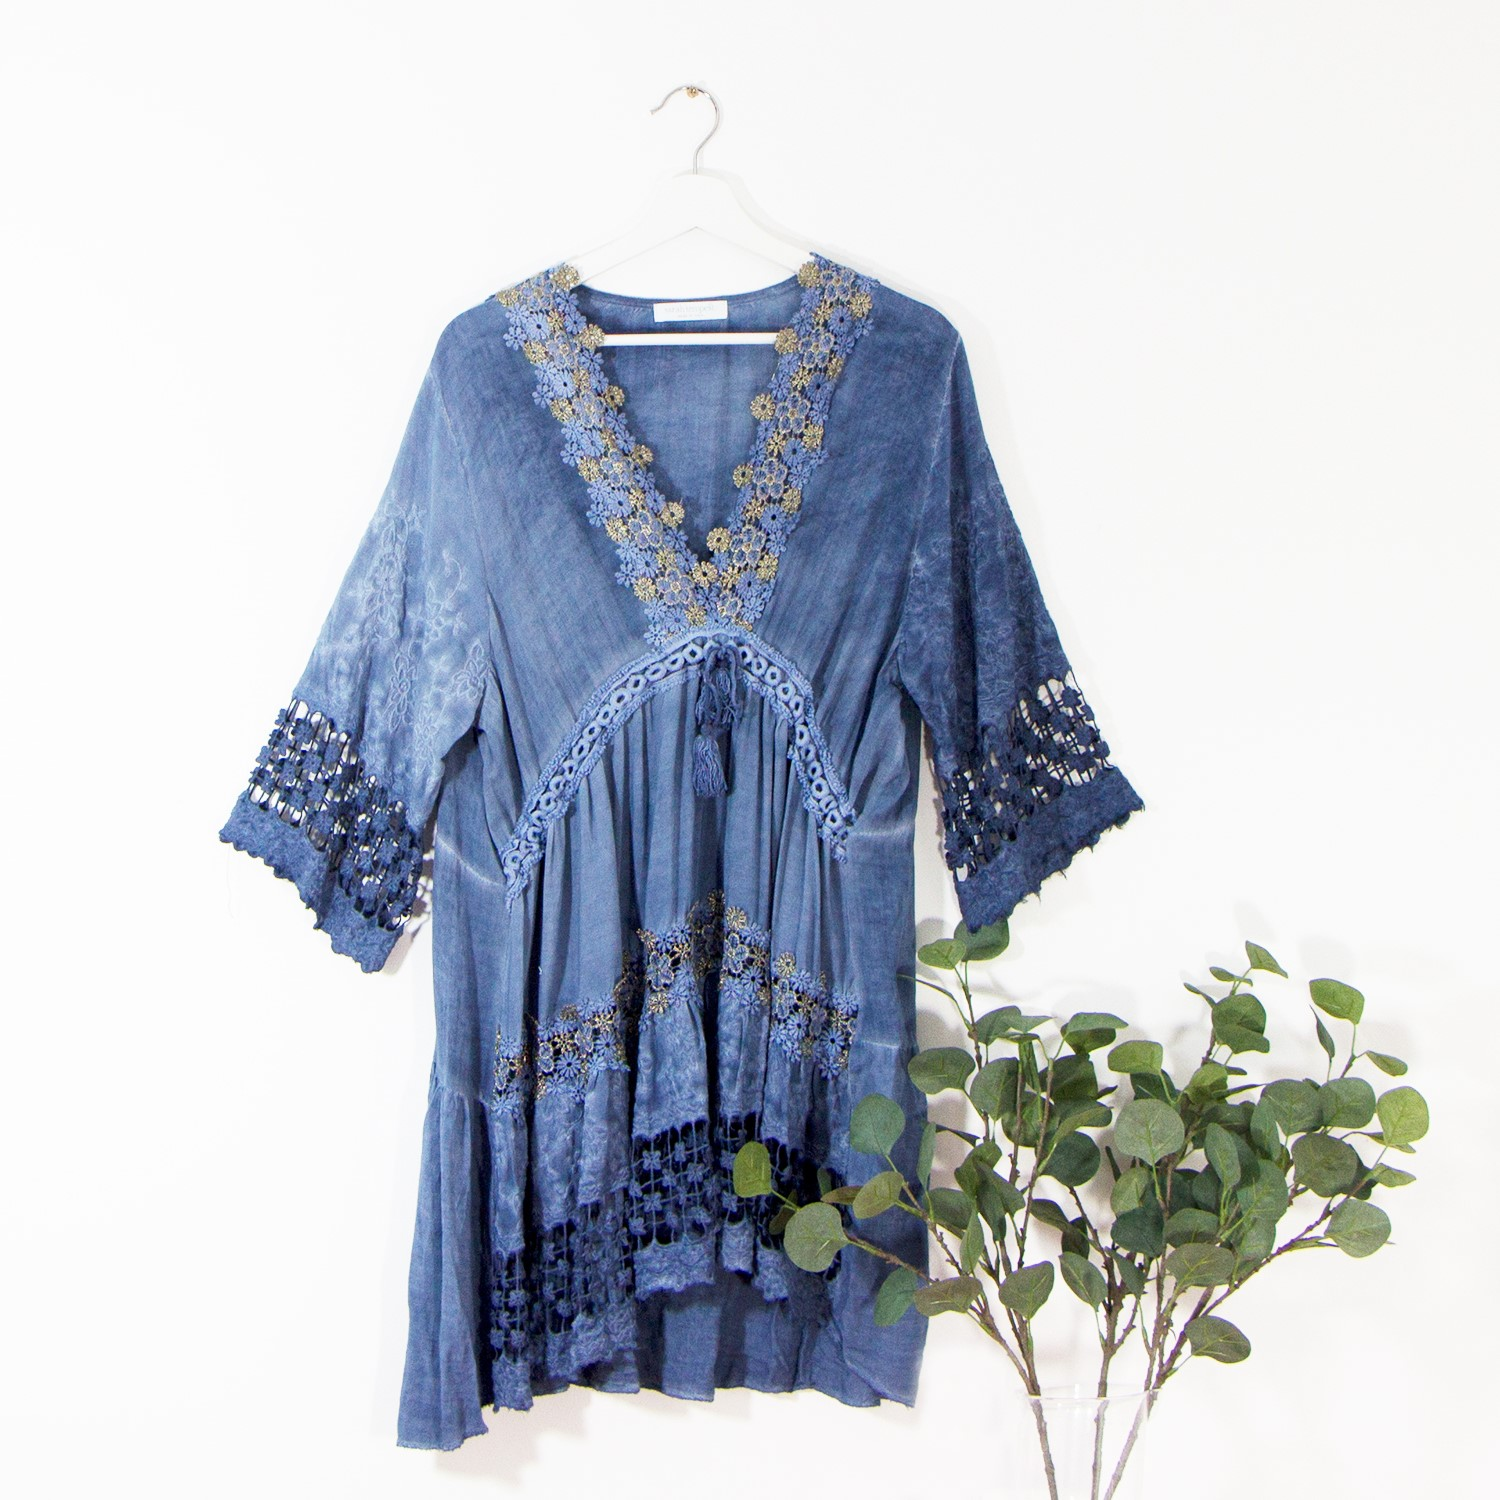 Boho prairie style viscose dress with vintage wash and gold lace detail